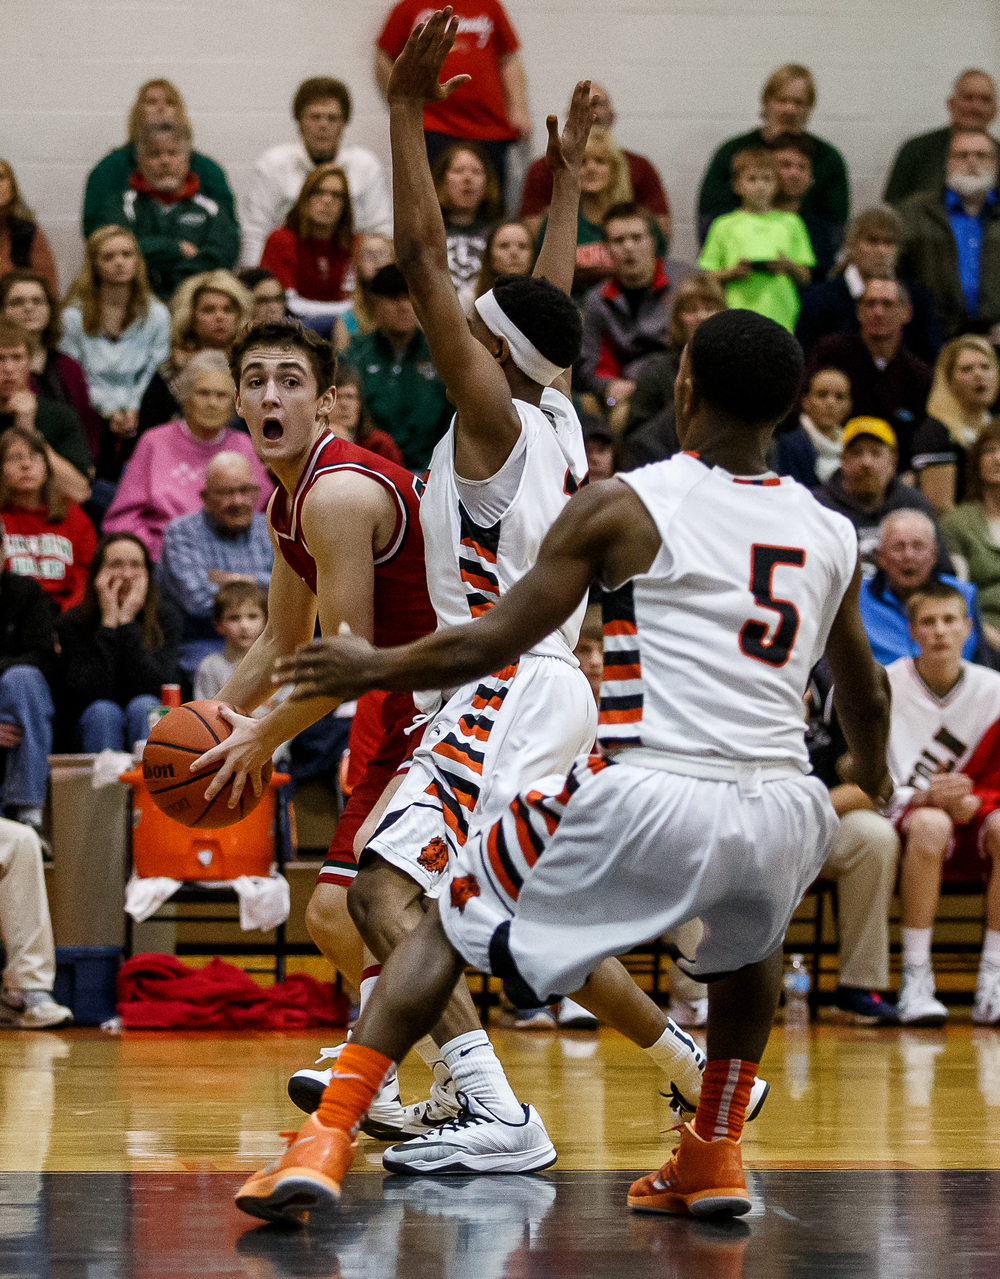 Lincoln's Payton Ebelherr (14) is swarmed by Lanphier's Aundrae Williams (23) as he tries to the pass the ball out in the second half at Lober-Nika Gymnasium, Friday, Jan. 9, 2015, in Springfield, Ill. Justin L. Fowler/The State Journal-Register